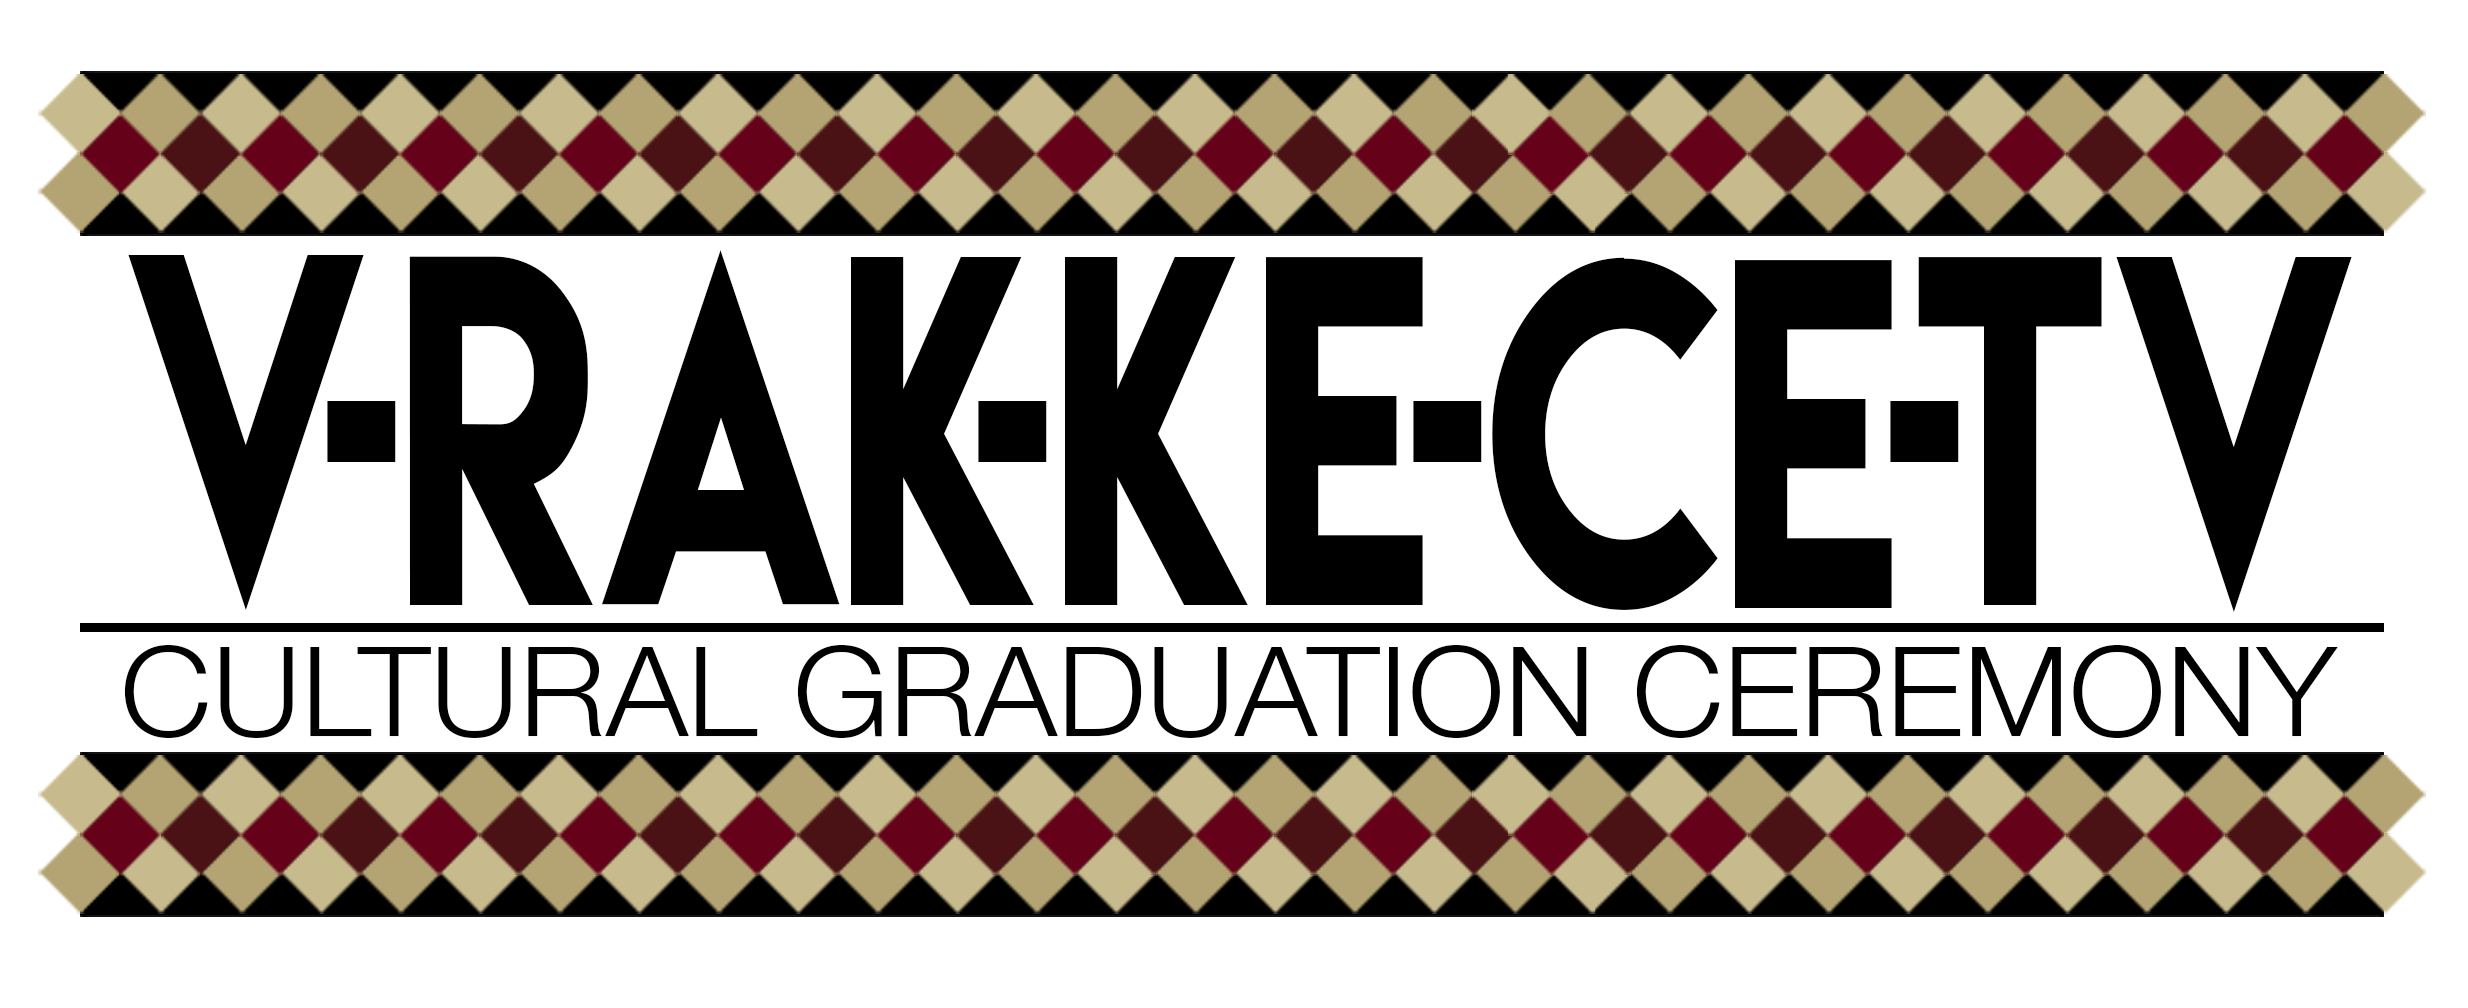 This image is the logo for the V-Rak-Ke-Ce-Tv cultural graduation ceremony, featuring the name of the ceremony with patchwork borders.